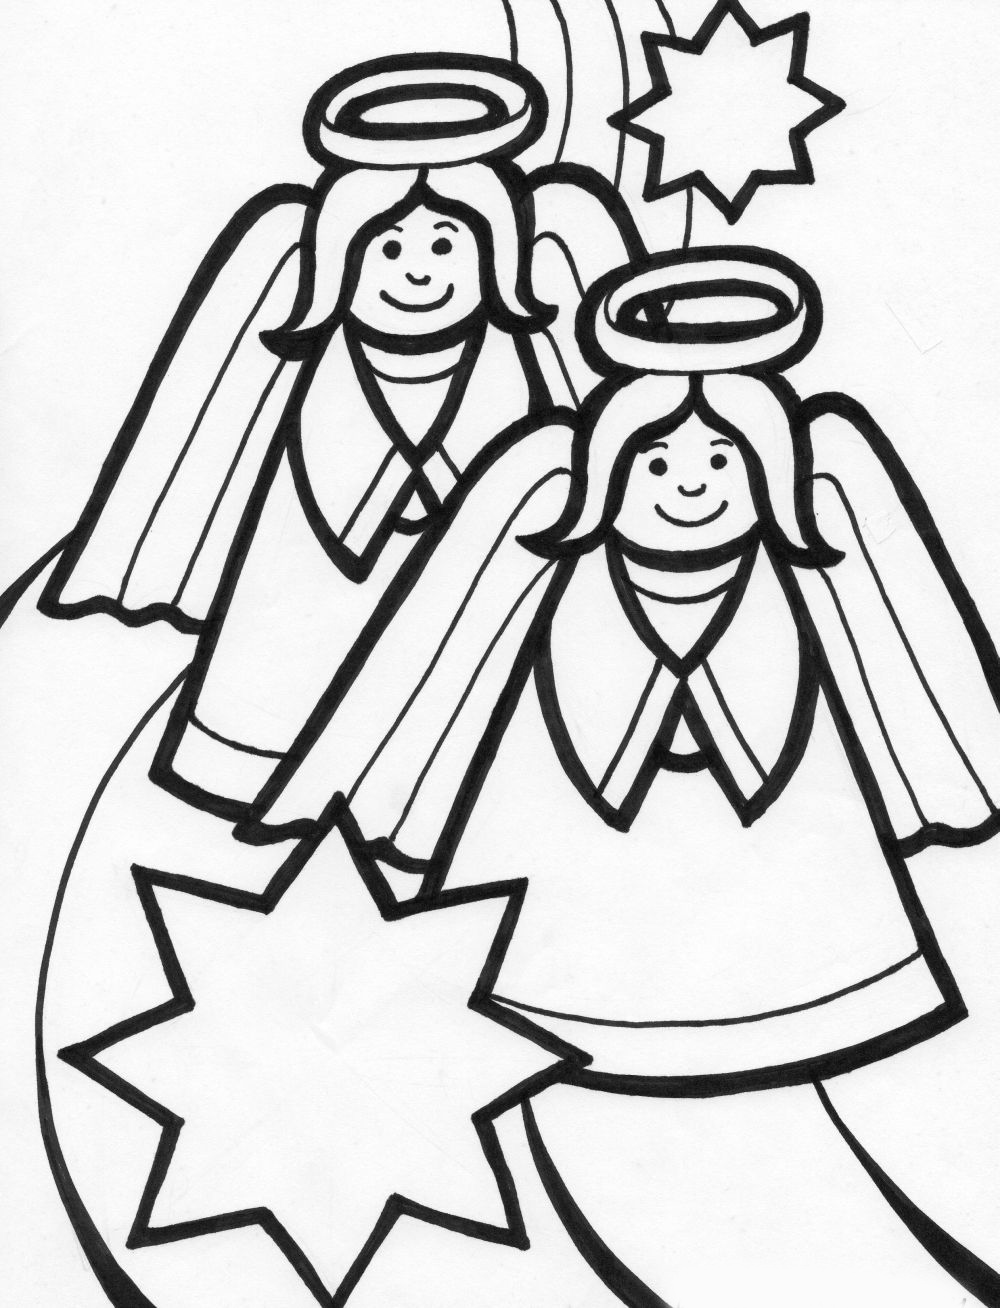 angel coloring sheet free printable angel coloring pages for kids sheet coloring angel